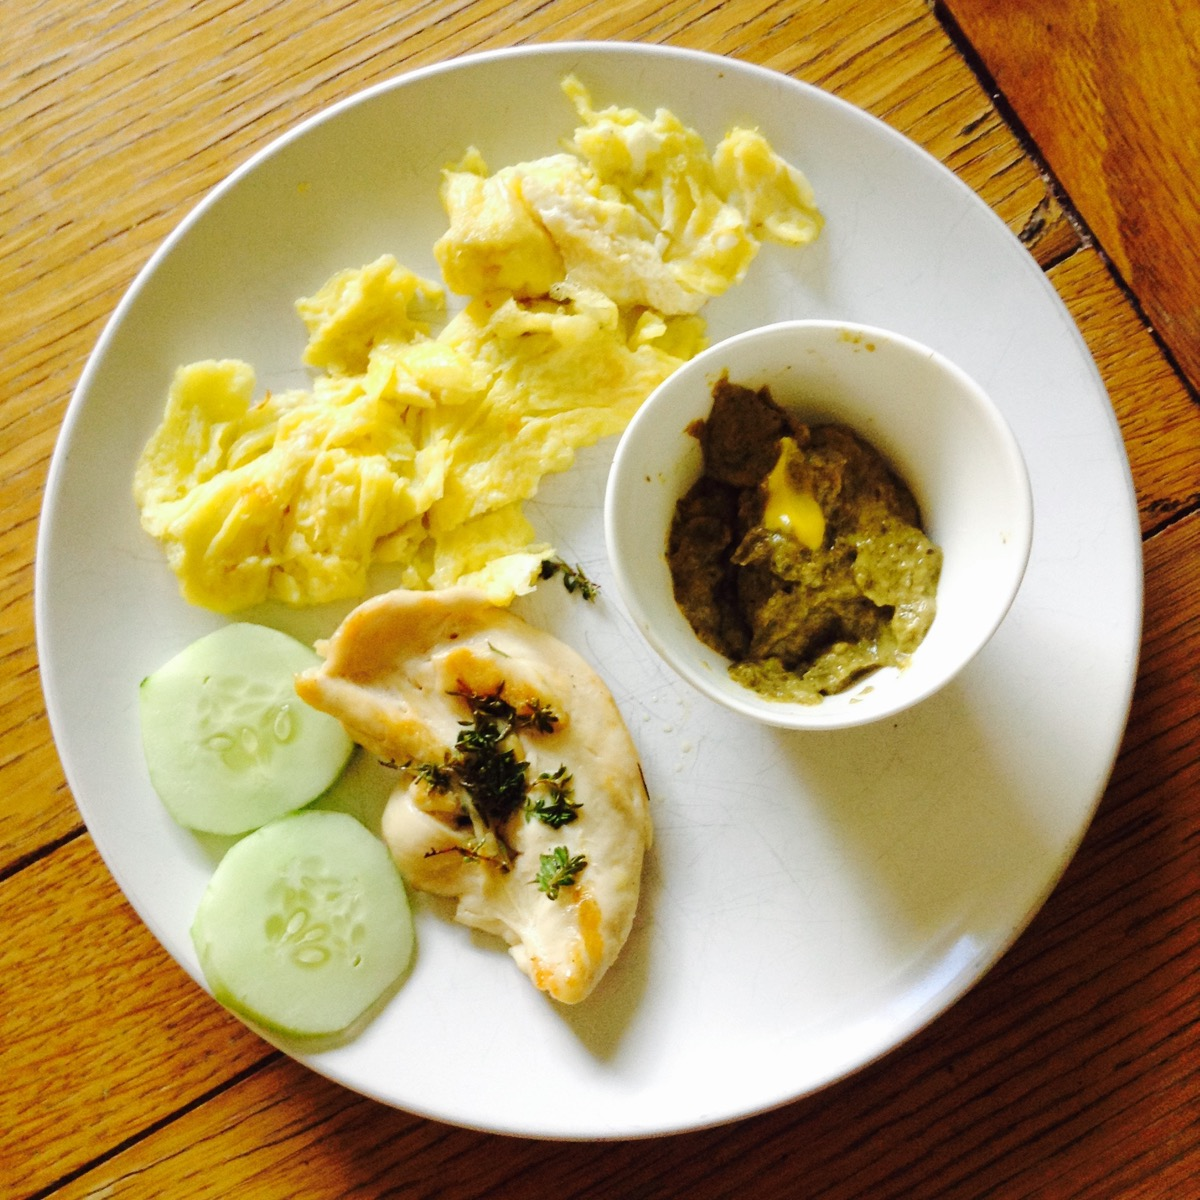 Joaquin's appetizer: Yum! The dip was a great idea and the darkness of the chicken, egg, and dip was beautifully balanced by the freshness of the cucumber.